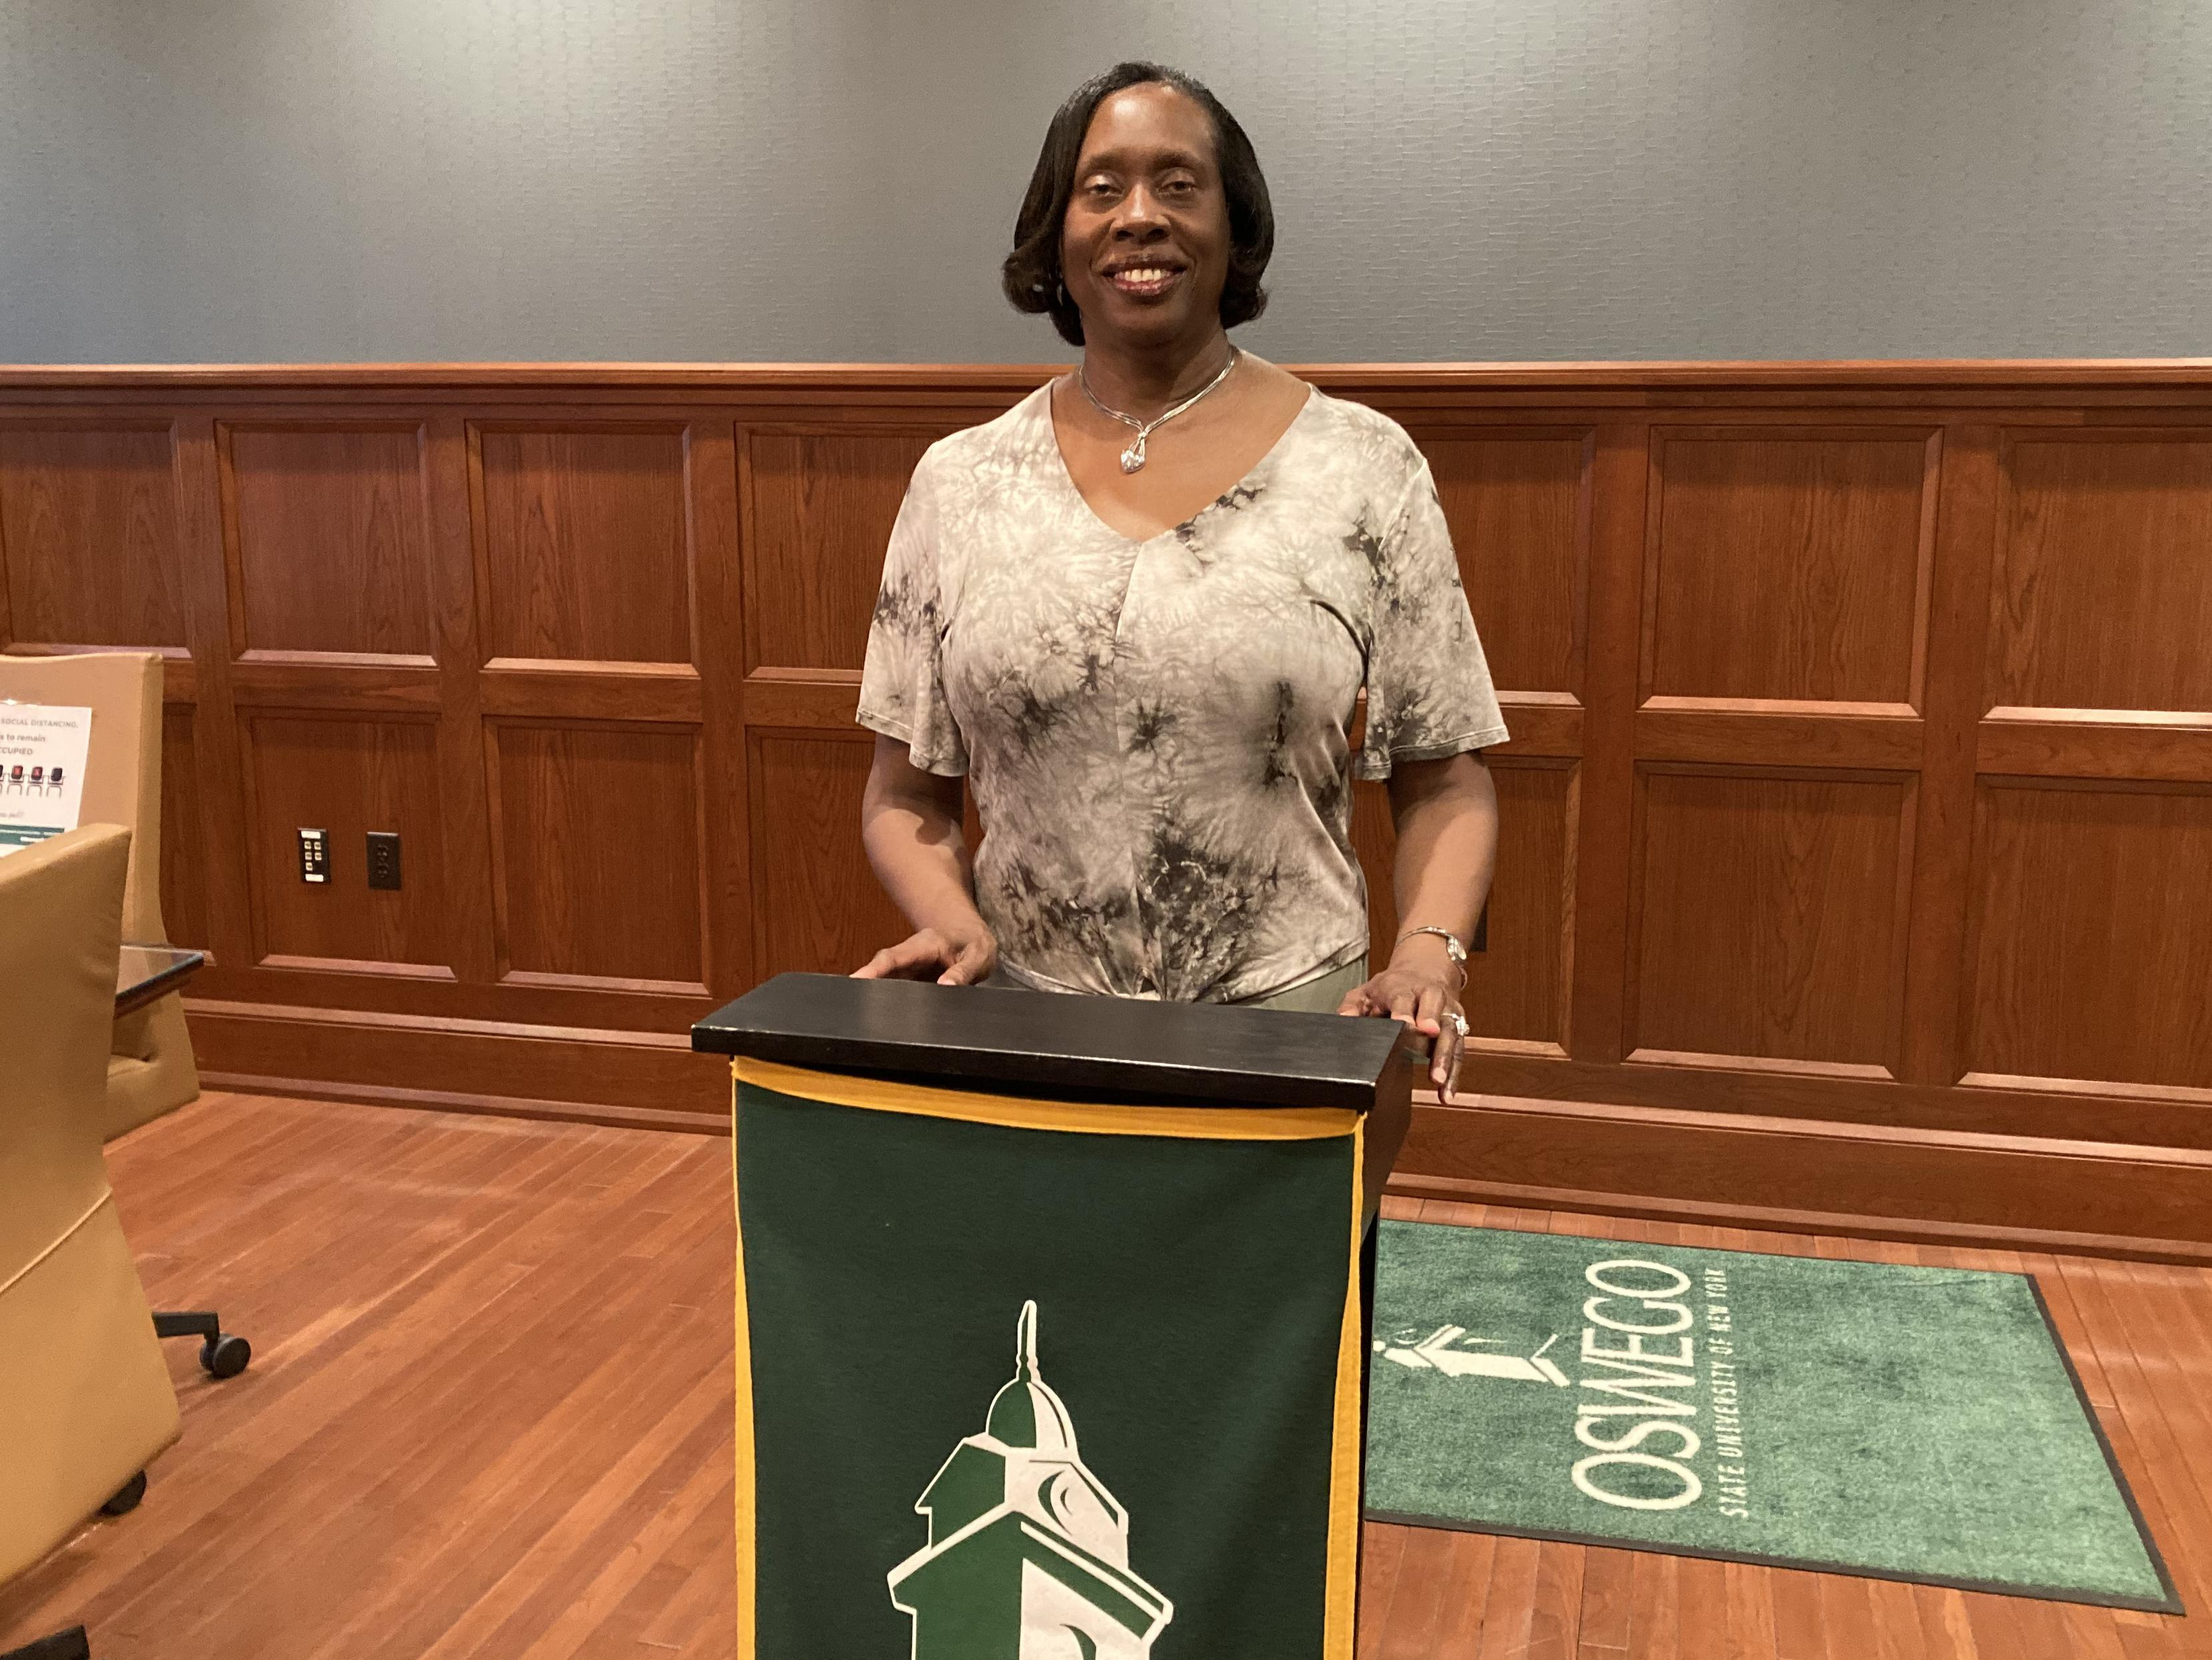 Alumna, educator, community leader and entrepreneur Phyllis Moore will serve as keynote speaker for Honors Convocation